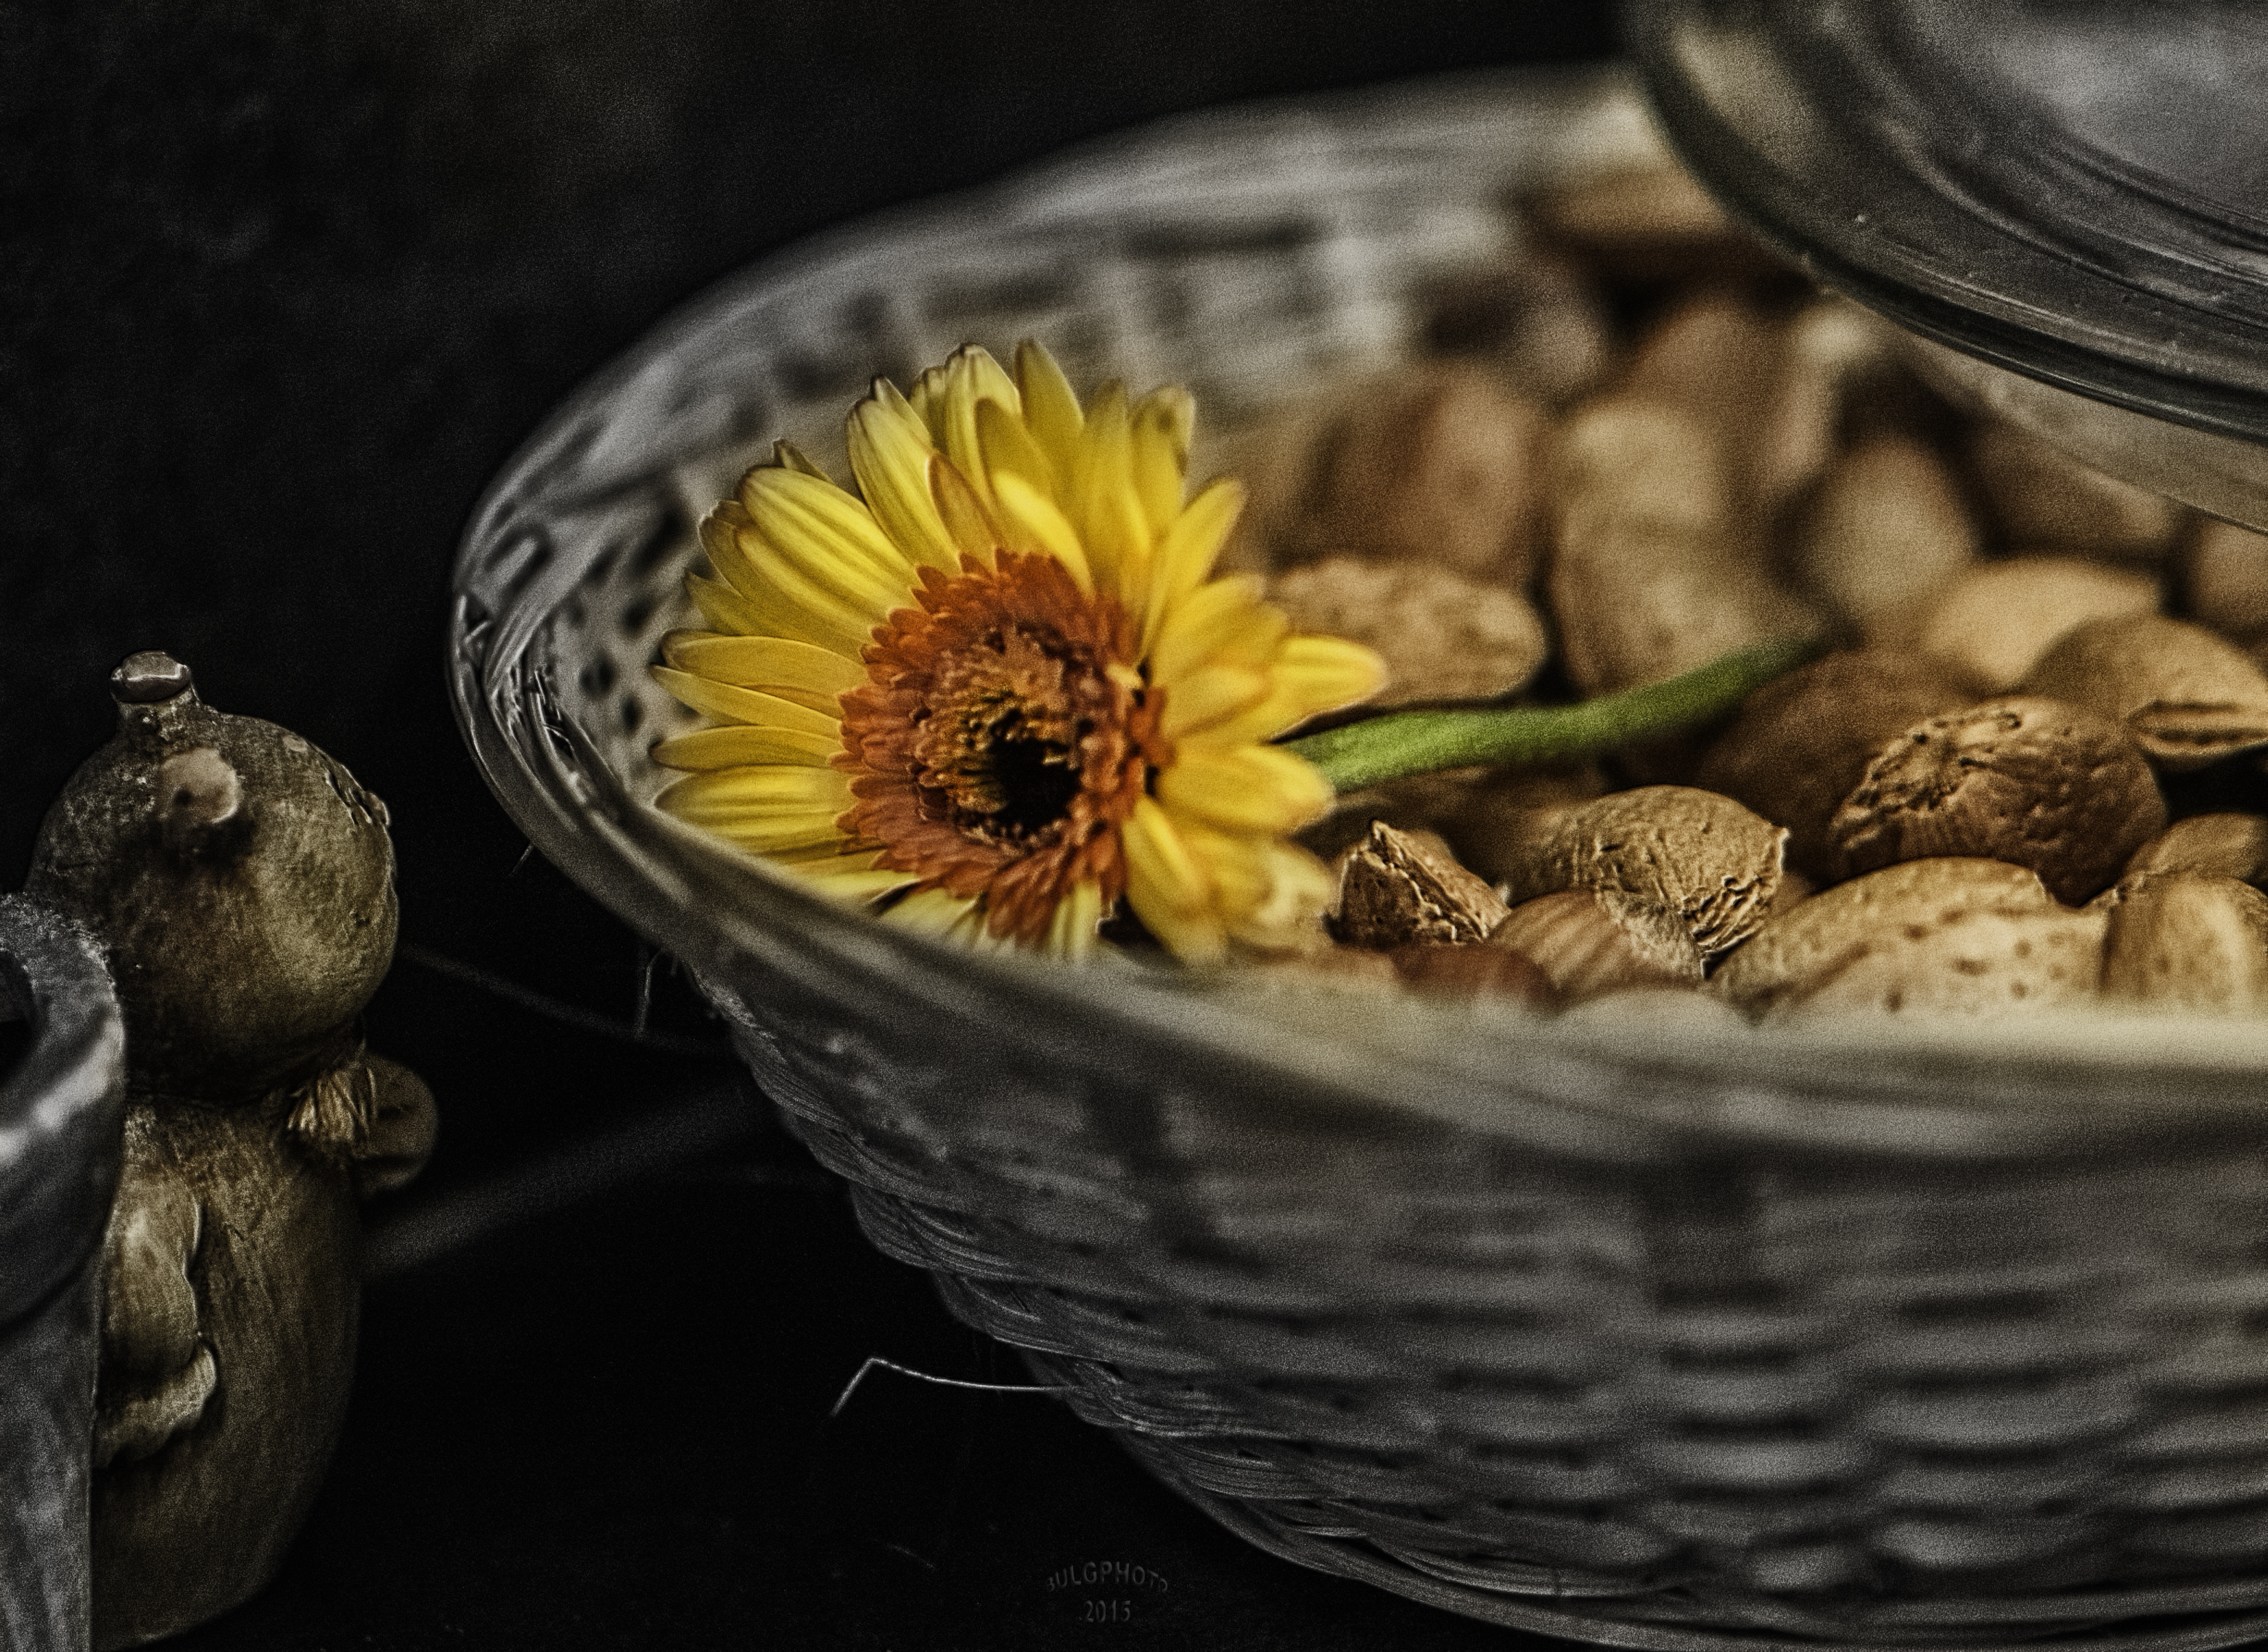 Look The Flower by bulgphoto